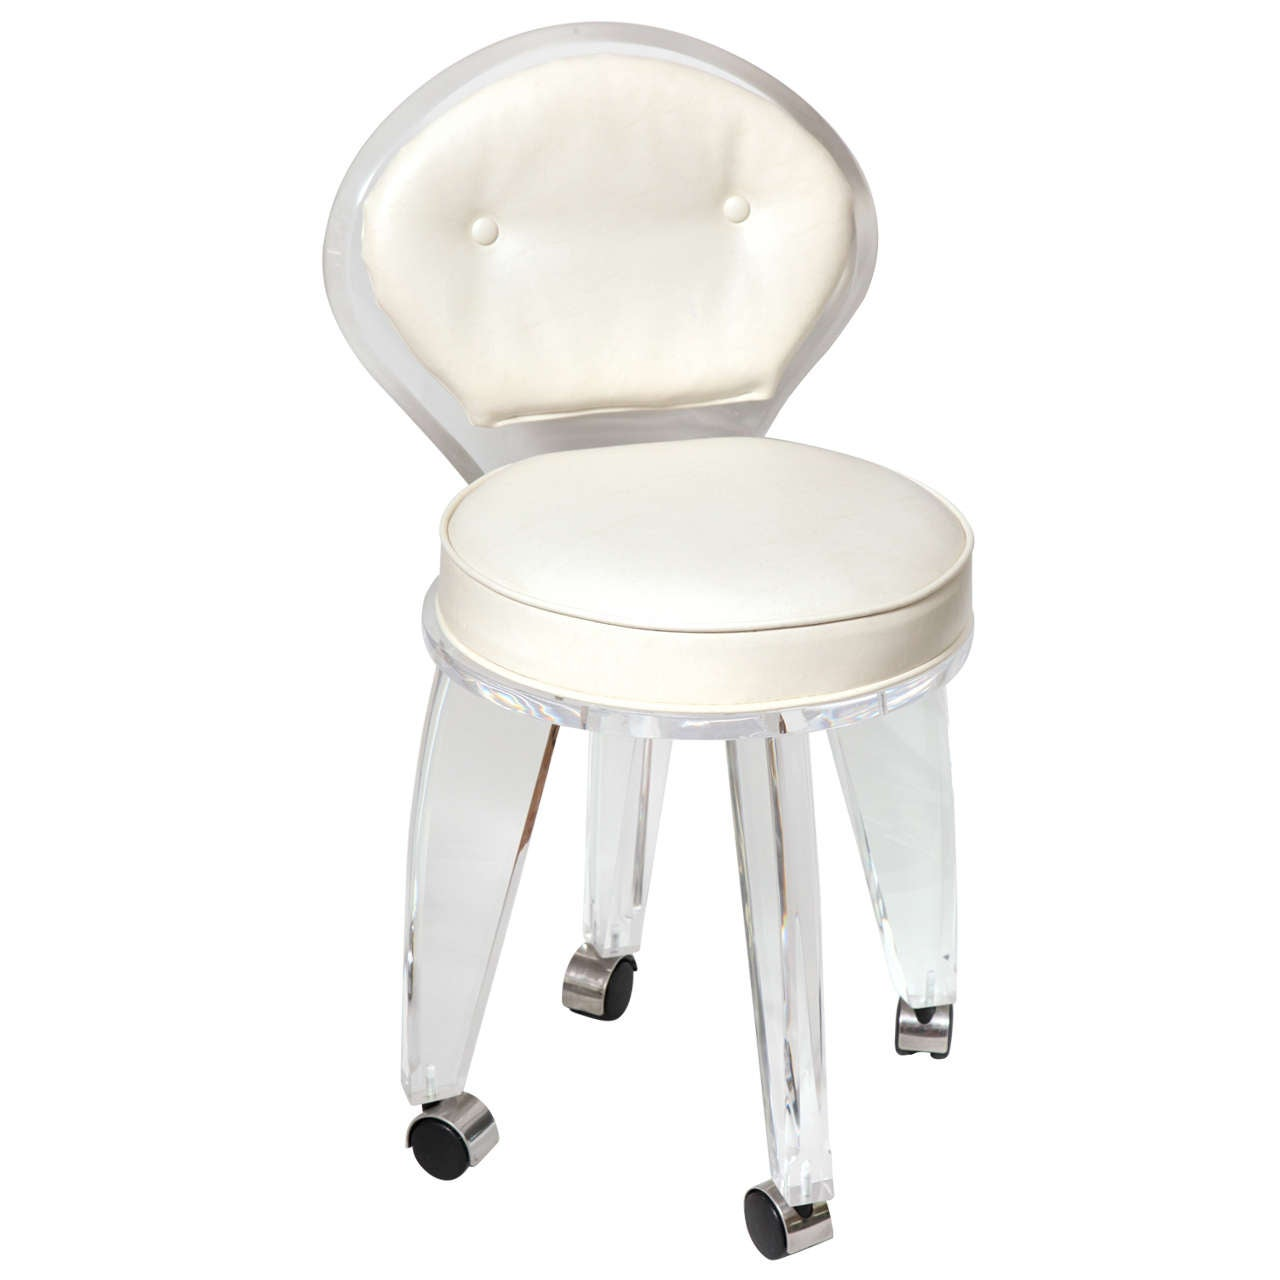 Lucite Upholstered Rolling Swivel Vanity Chair at 1stdibs